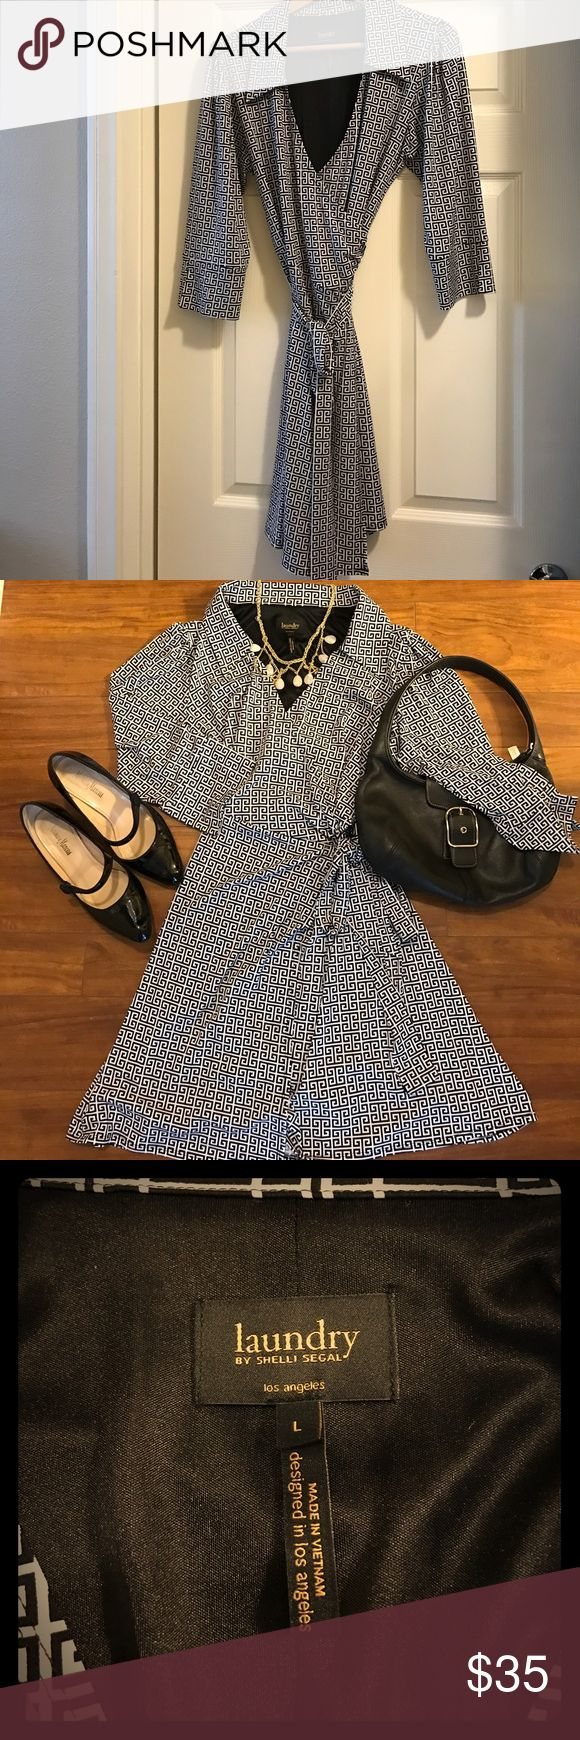 Laundry Dress Adorable classic wrap dress 👗 Laundry by Shelli Segal. Like new condition. Laundry by Shelli Segal Dresses Midi